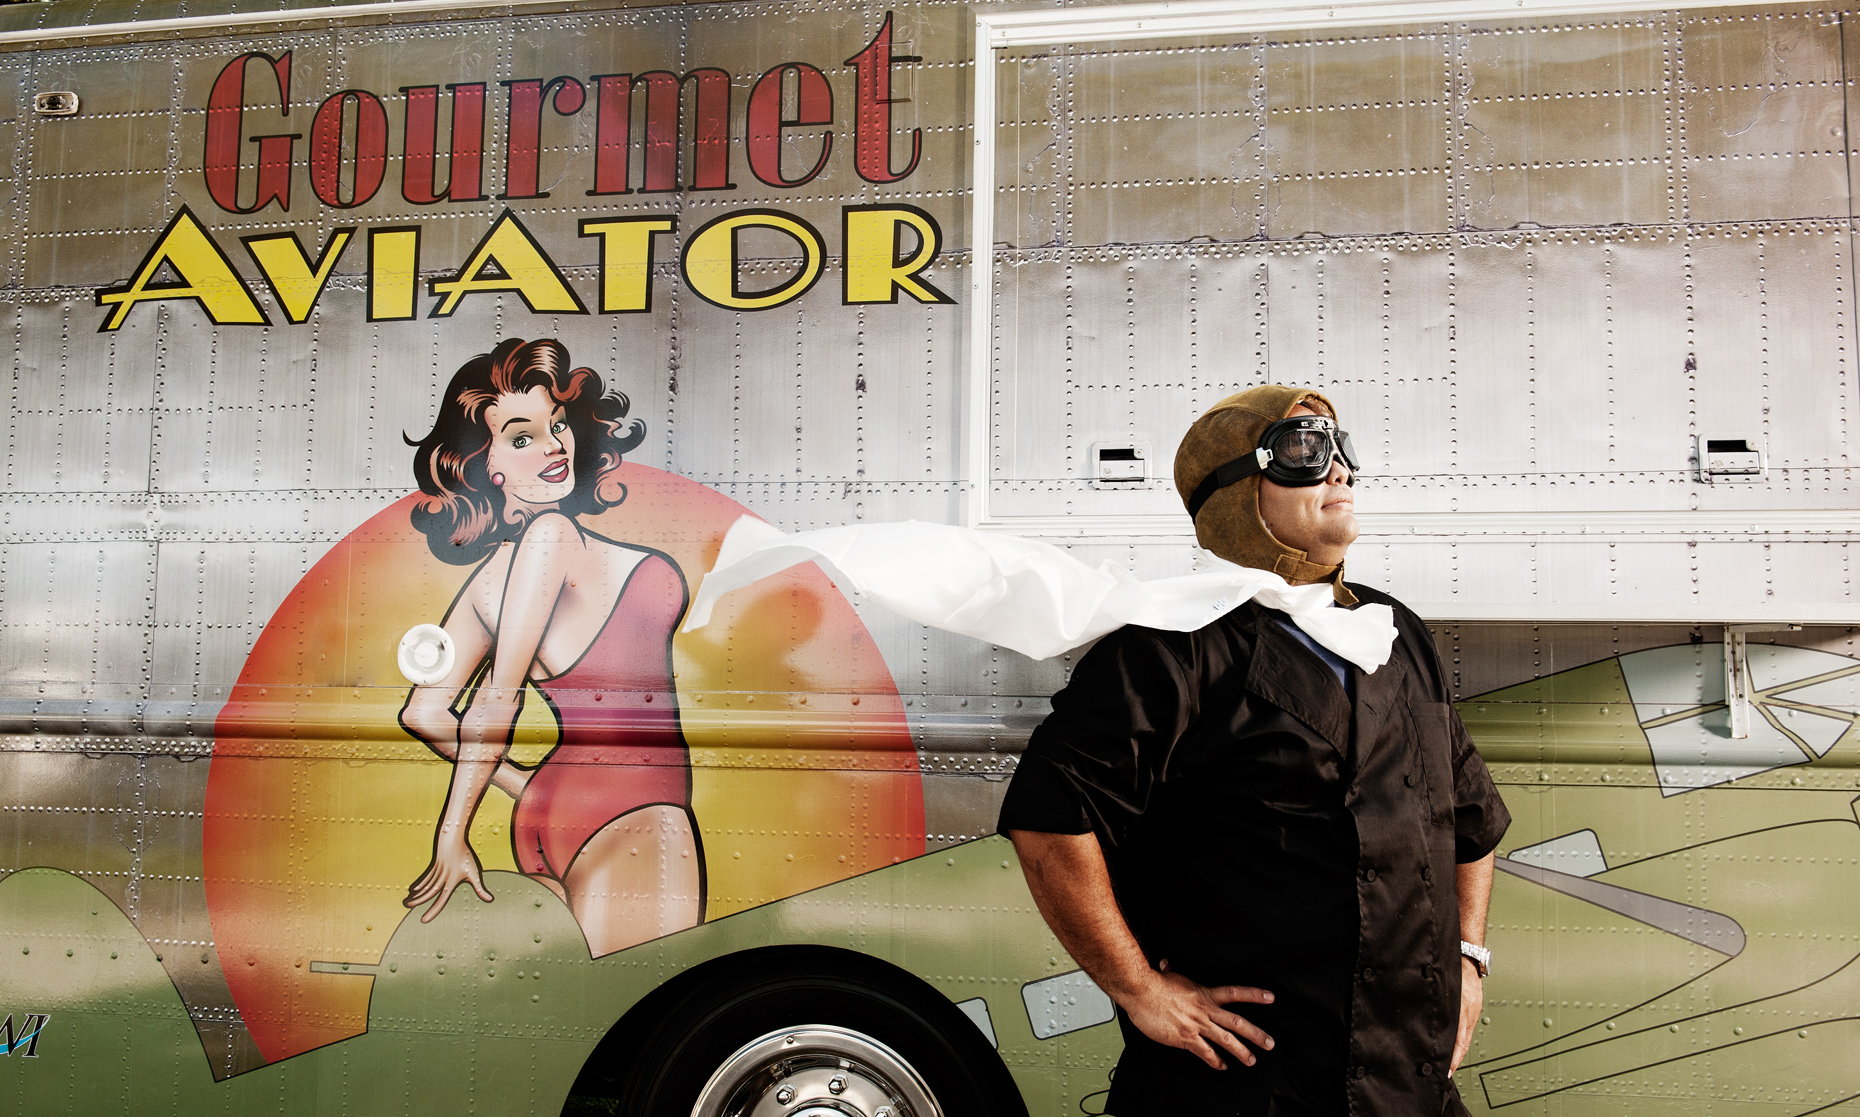 Food, Editorial, Advertising and Corporate Studio and Location Photography Jacksonville, Florida  Food Truck Gourmet Aviator